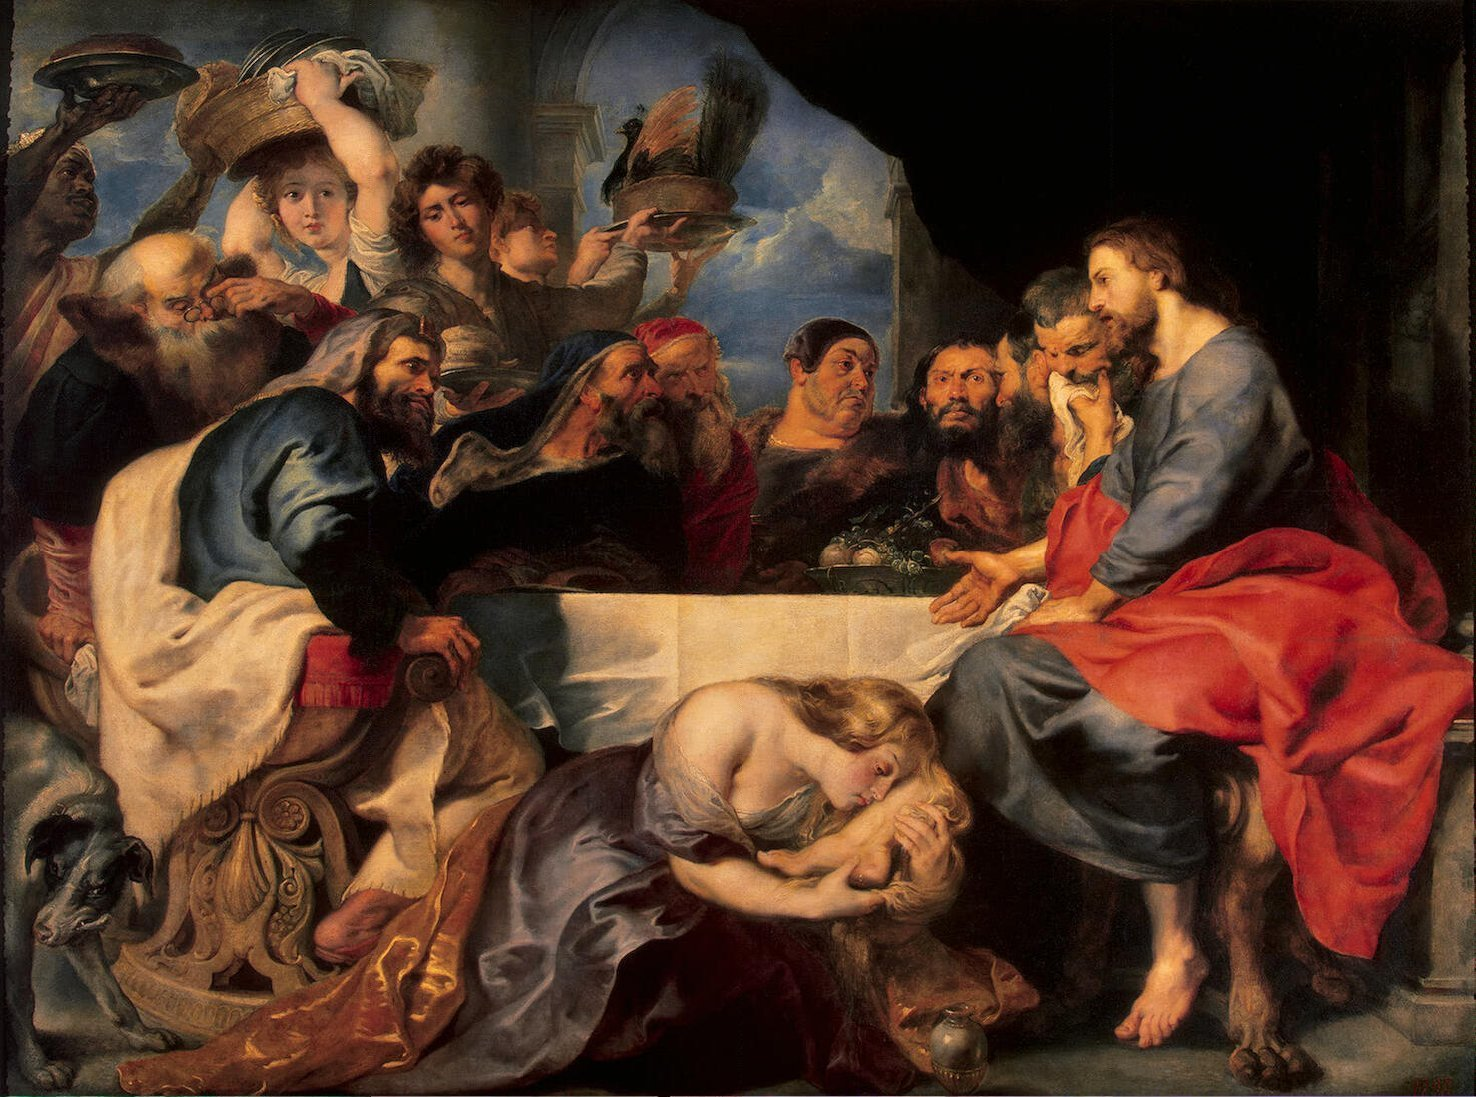 https://christnetwork.net/wp-content/uploads/2015/08/rubens-feast_of_simon_the_pharisee.jpg